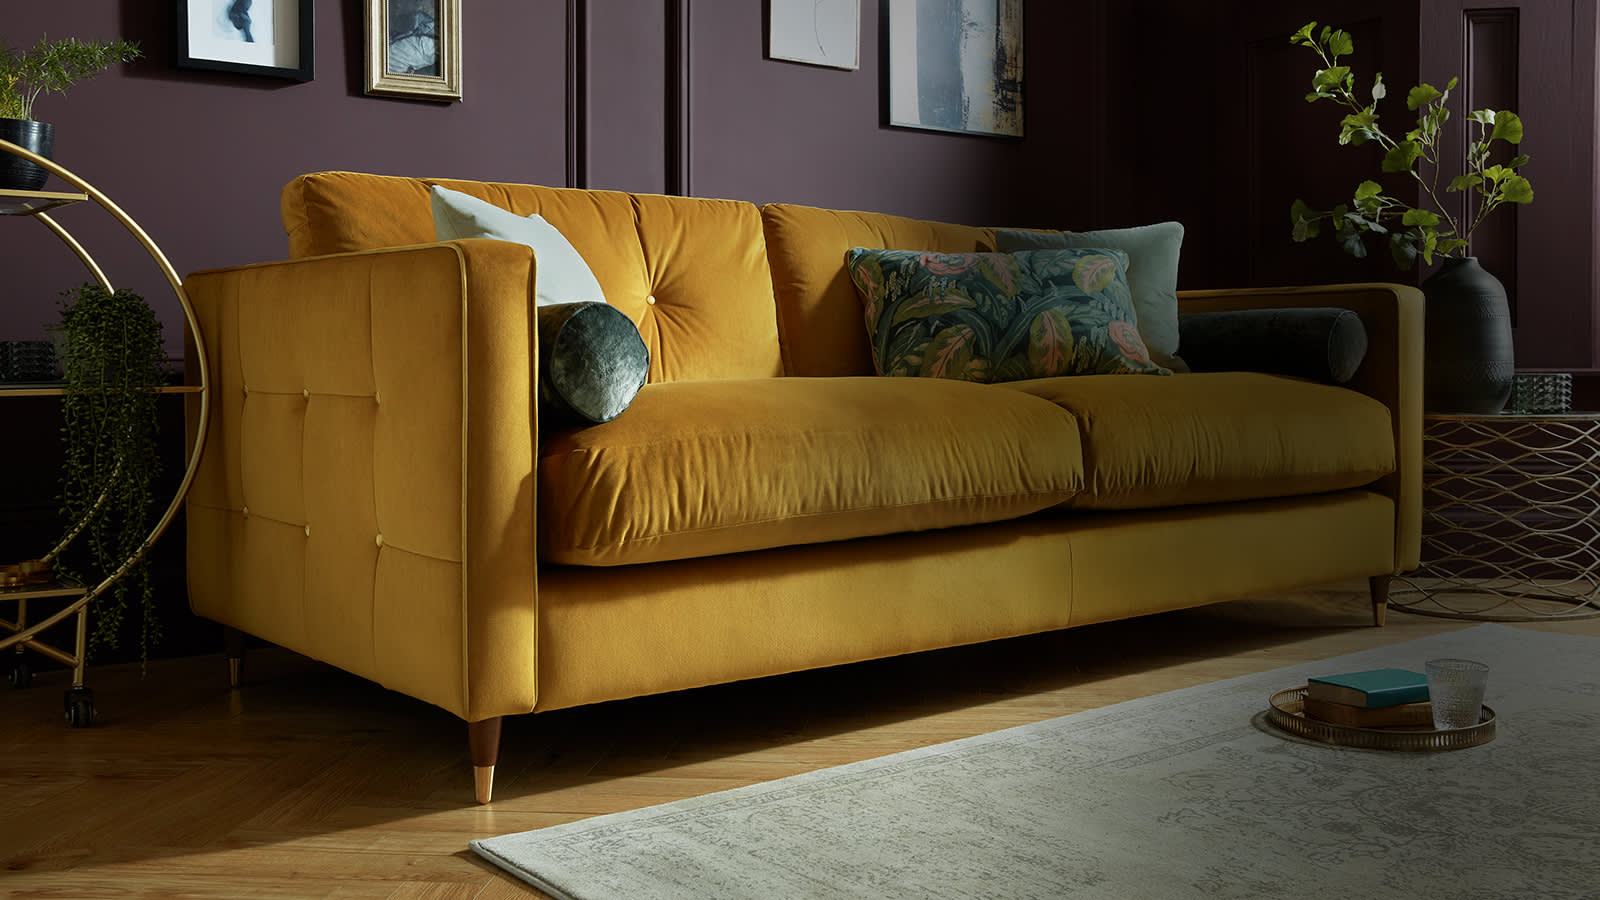 Sofology Clerkenwell yellow fabric sofa